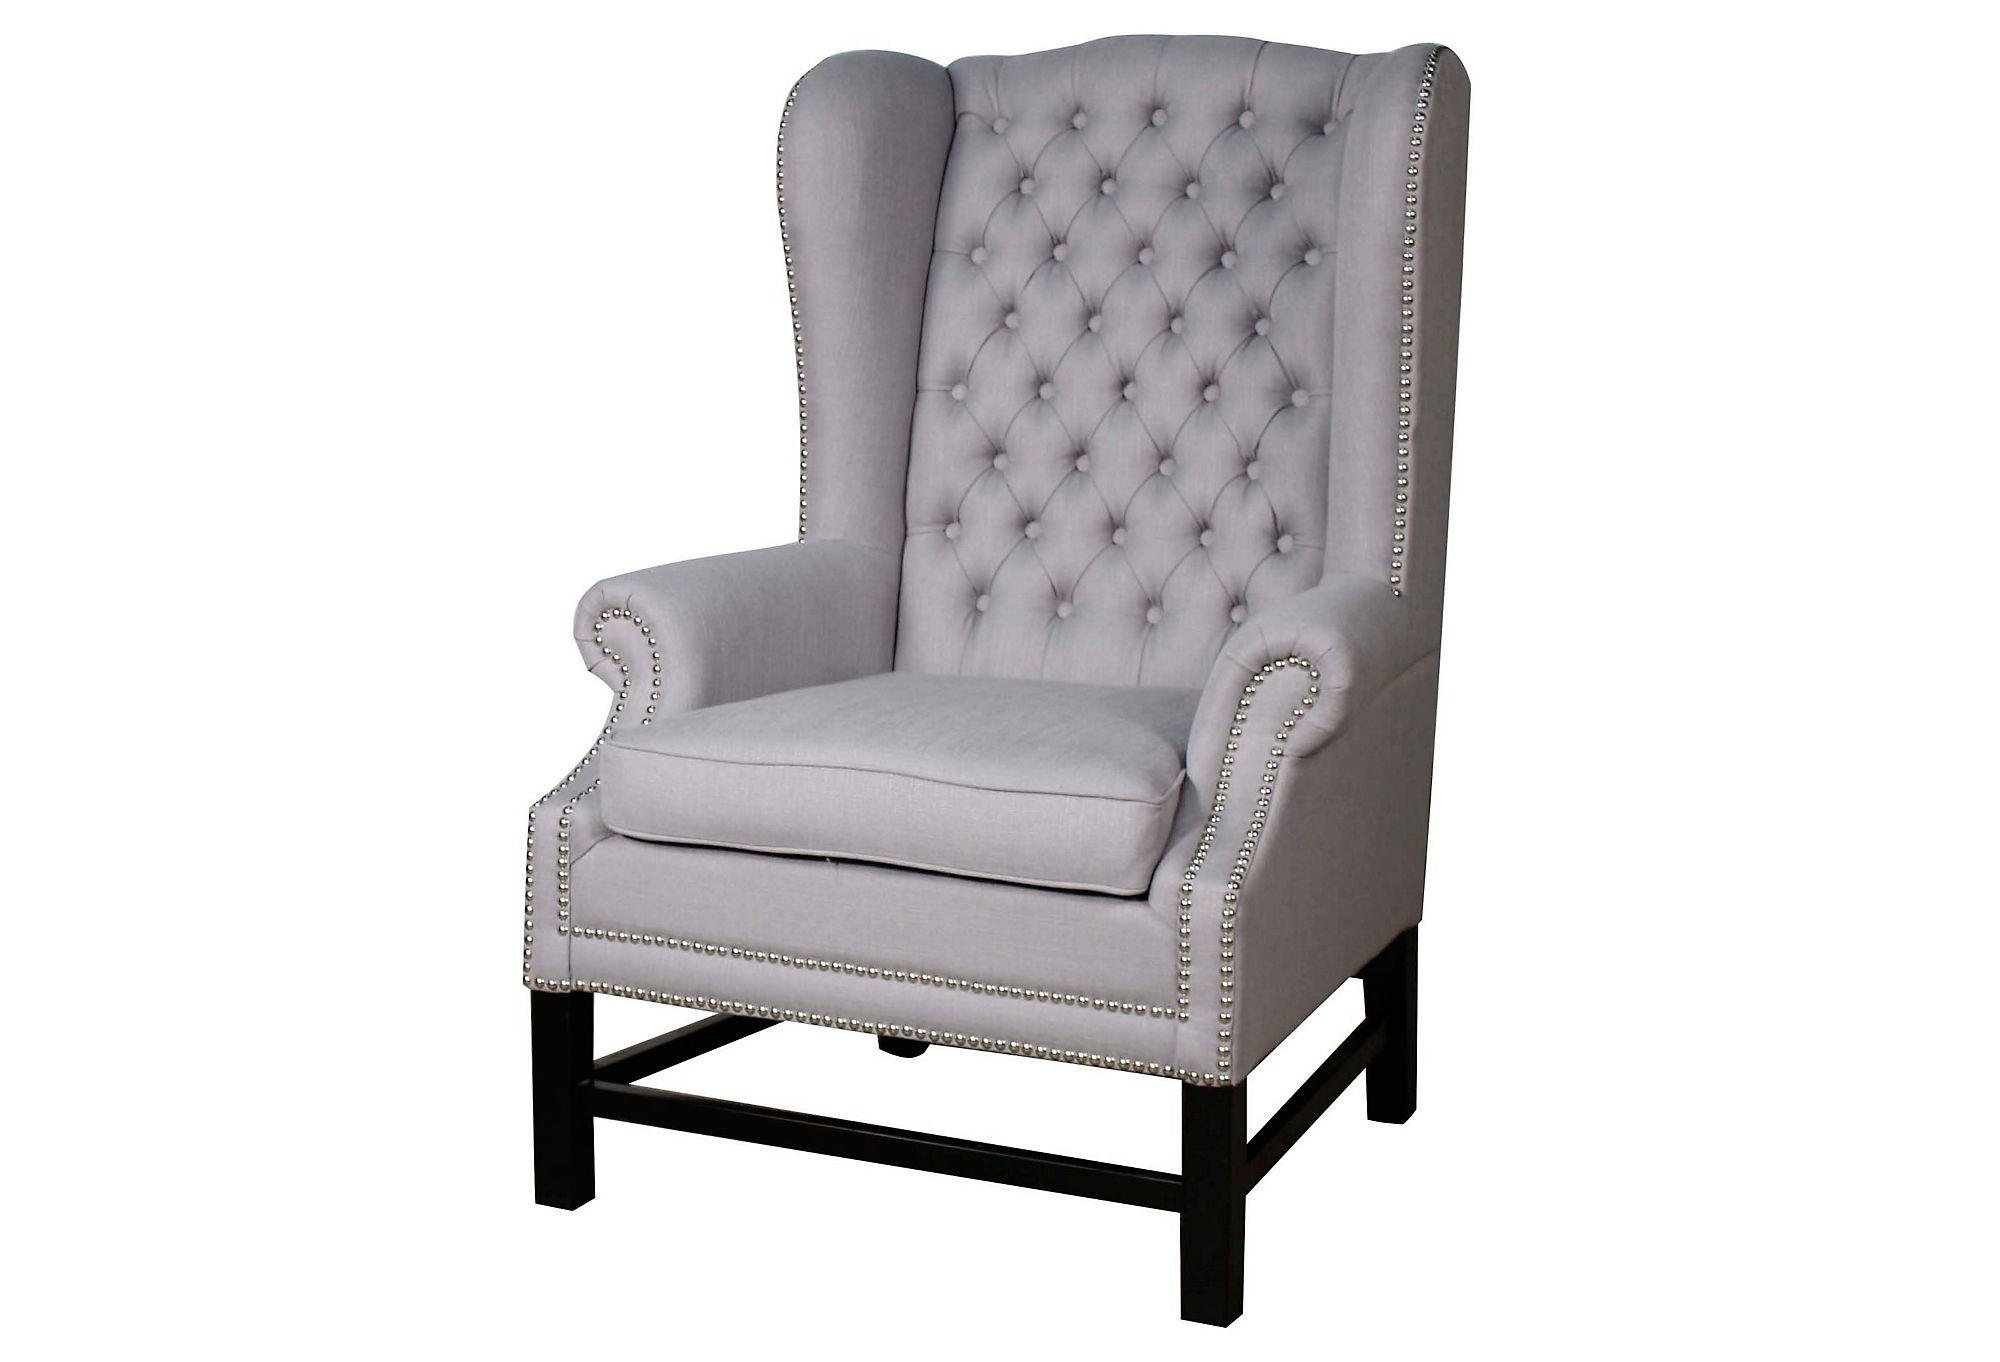 Graham tufted wingback chair blue from one kings lane